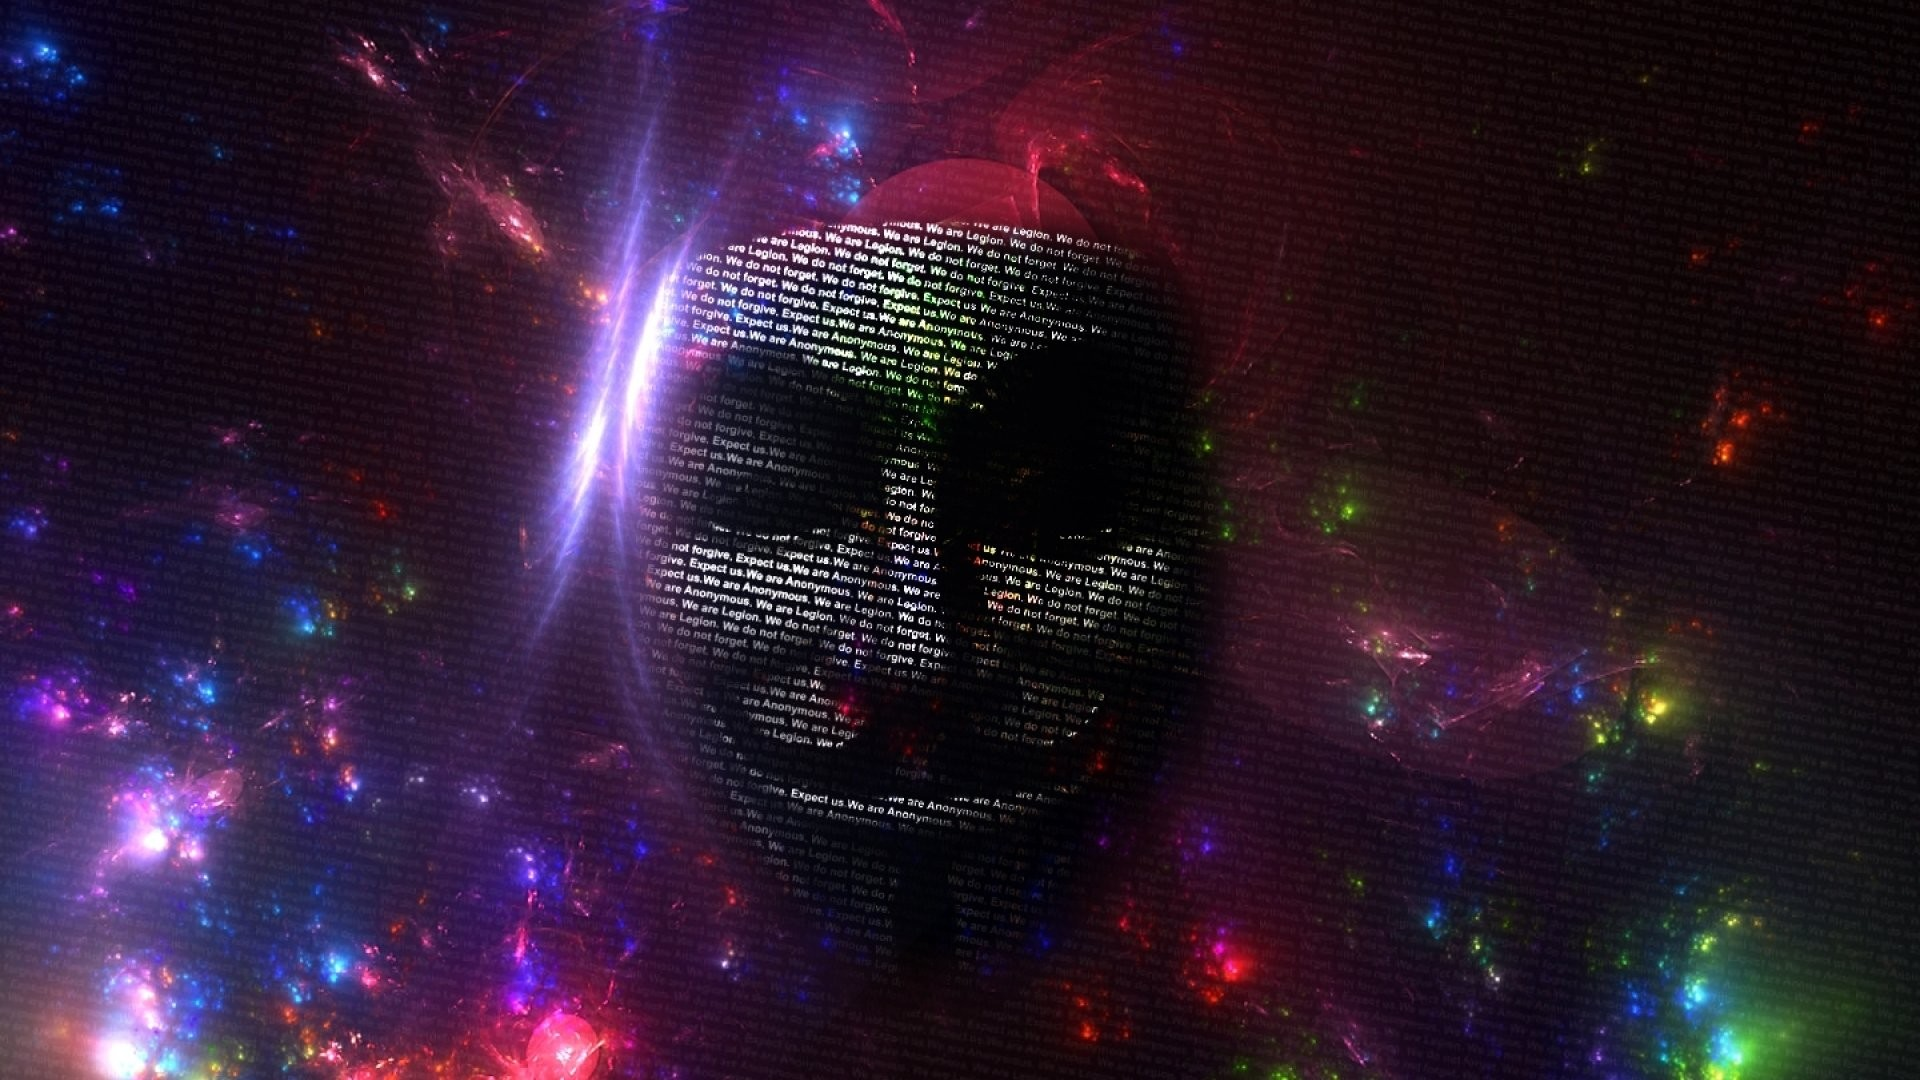 Colourful, Mask, Hacker,anonymous, Hacking,hd Abstract - Hacking Wallpaper For Windows 10 - HD Wallpaper